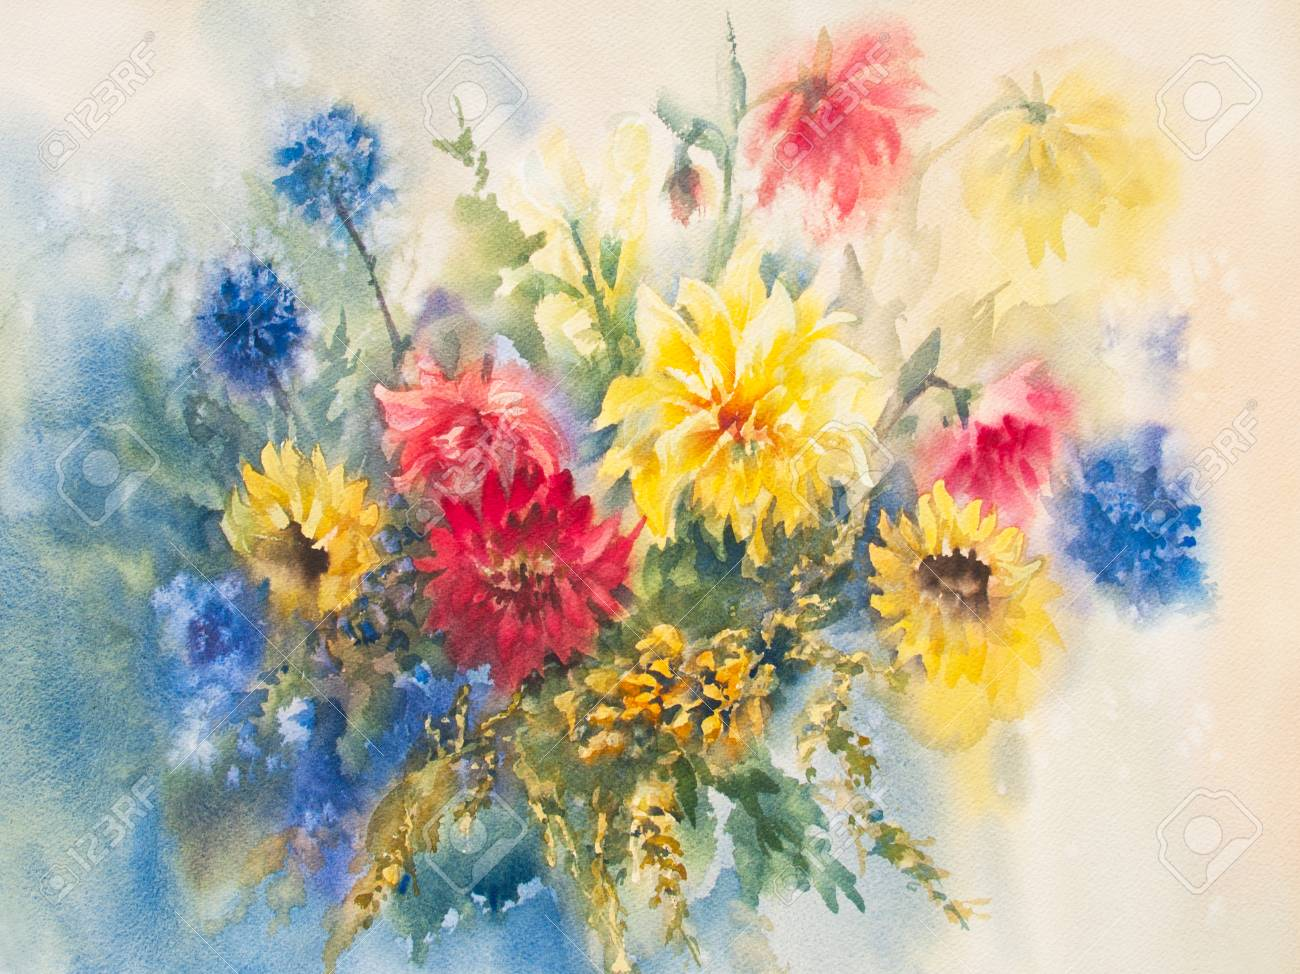 Yellow and red dahlias with blue flowers bouquet watercolor stock yellow and red dahlias with blue flowers bouquet watercolor painting illustration hand painted izmirmasajfo Image collections